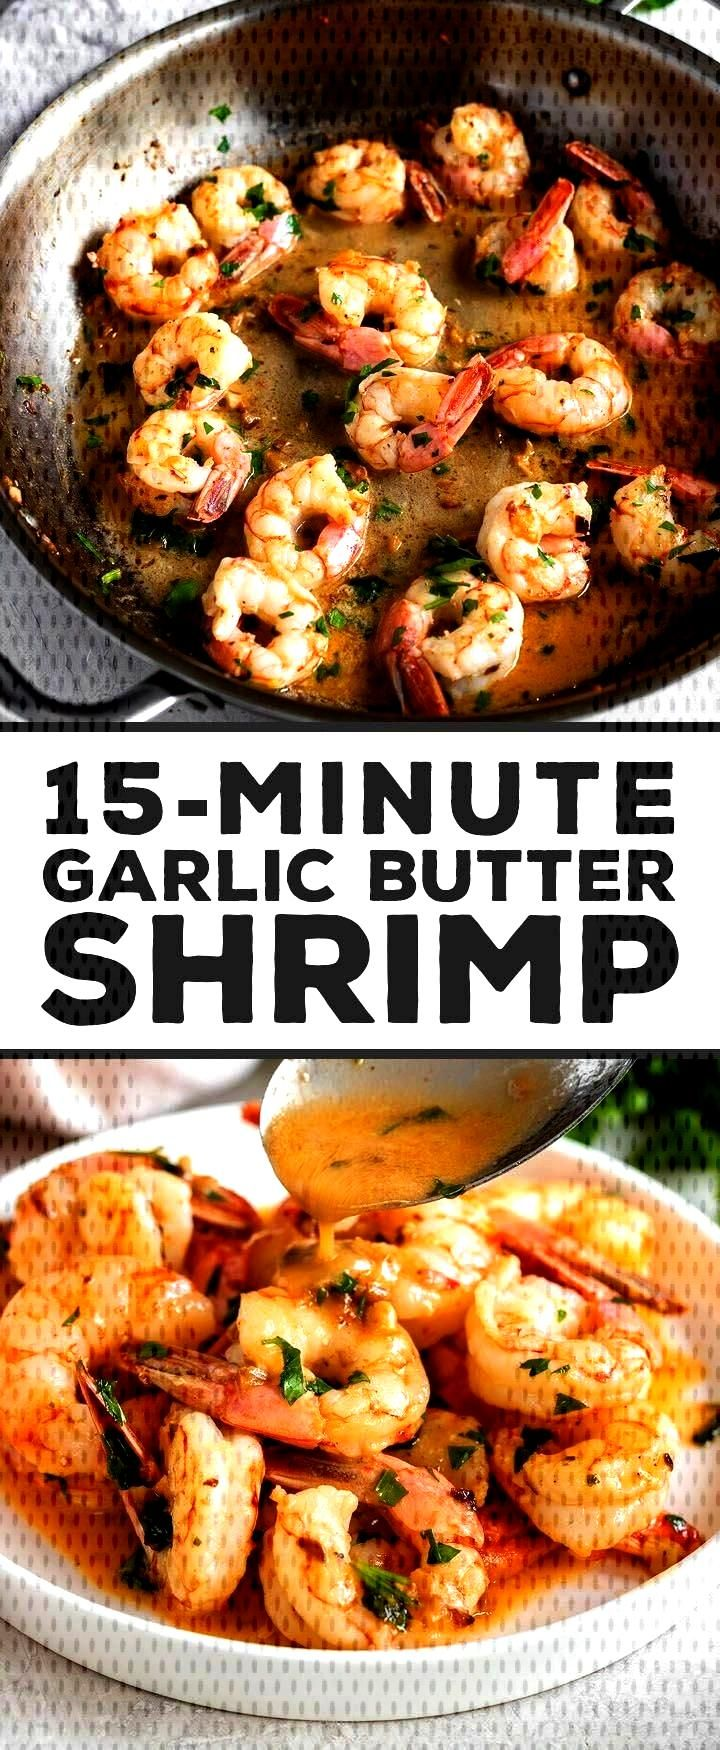 delicious and ready in 15 minutes!! Garlic butter shrimp with fresh lemon juice and a hint of red p